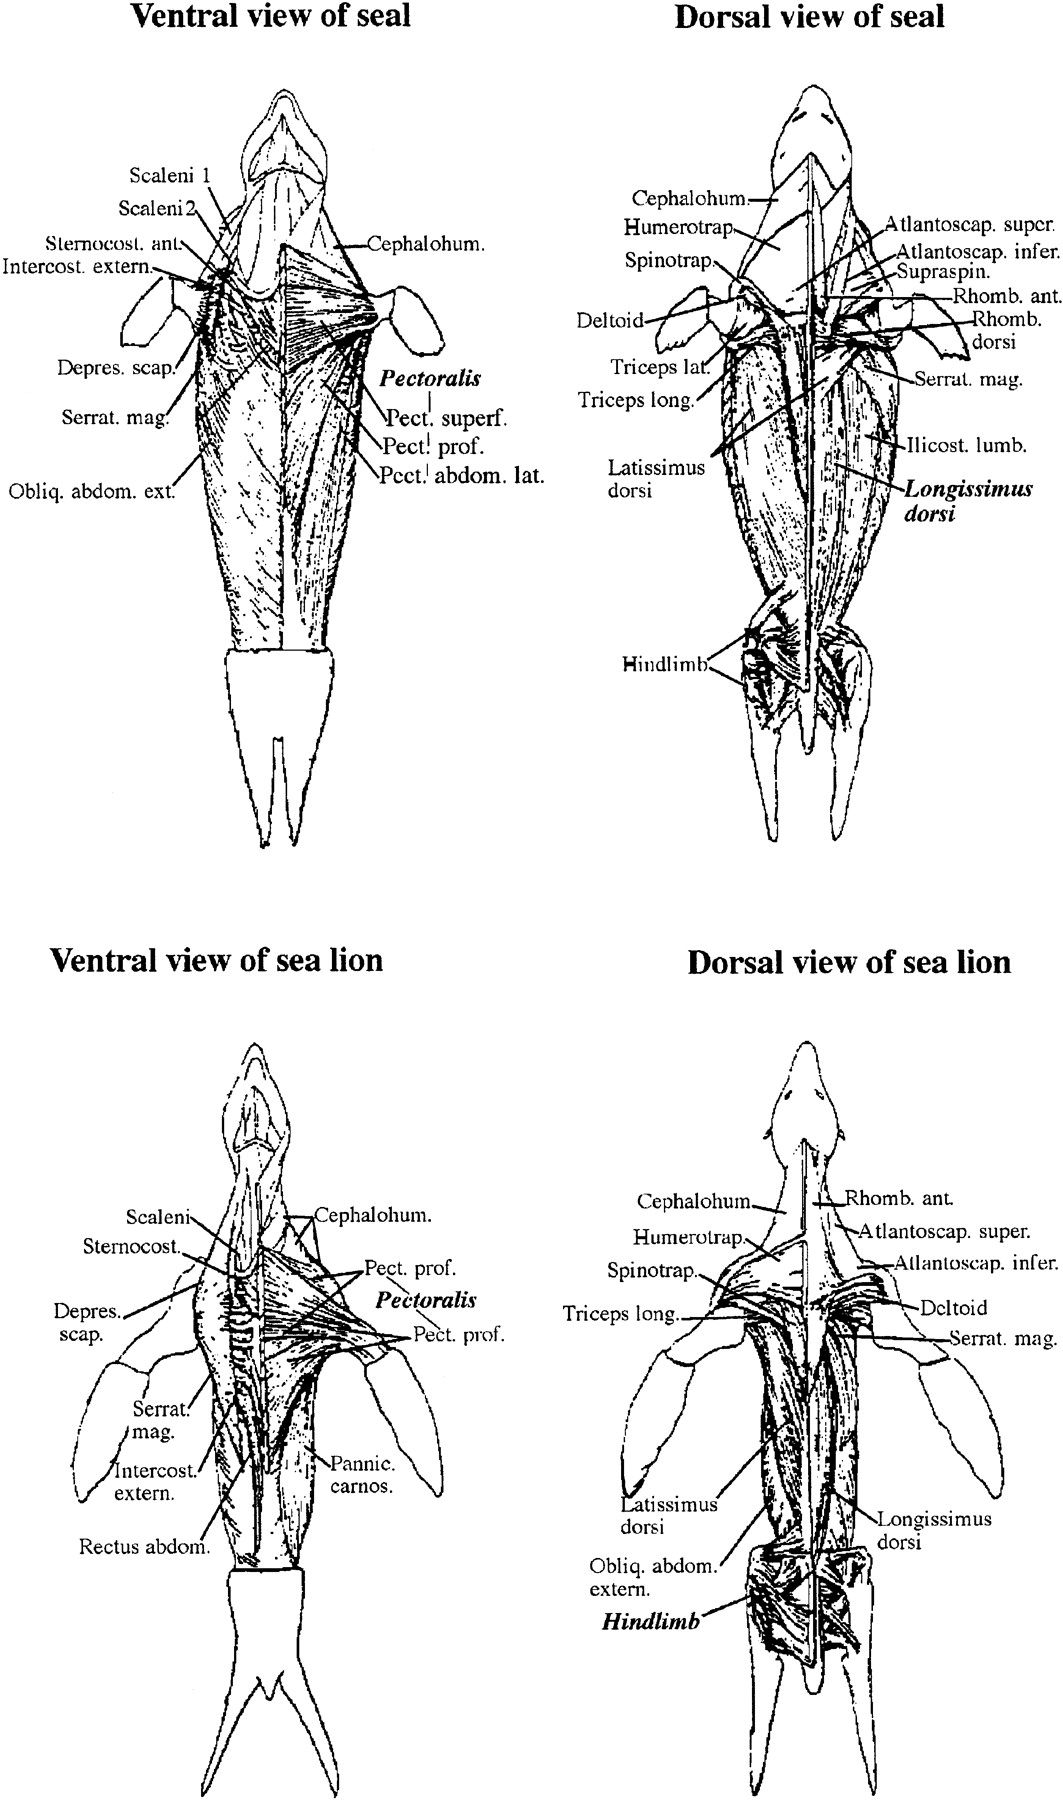 Rat Muscle Anatomy Diagram Benefits Of Network In Project Management Image Result For Spotted Seal Skeleton Reference